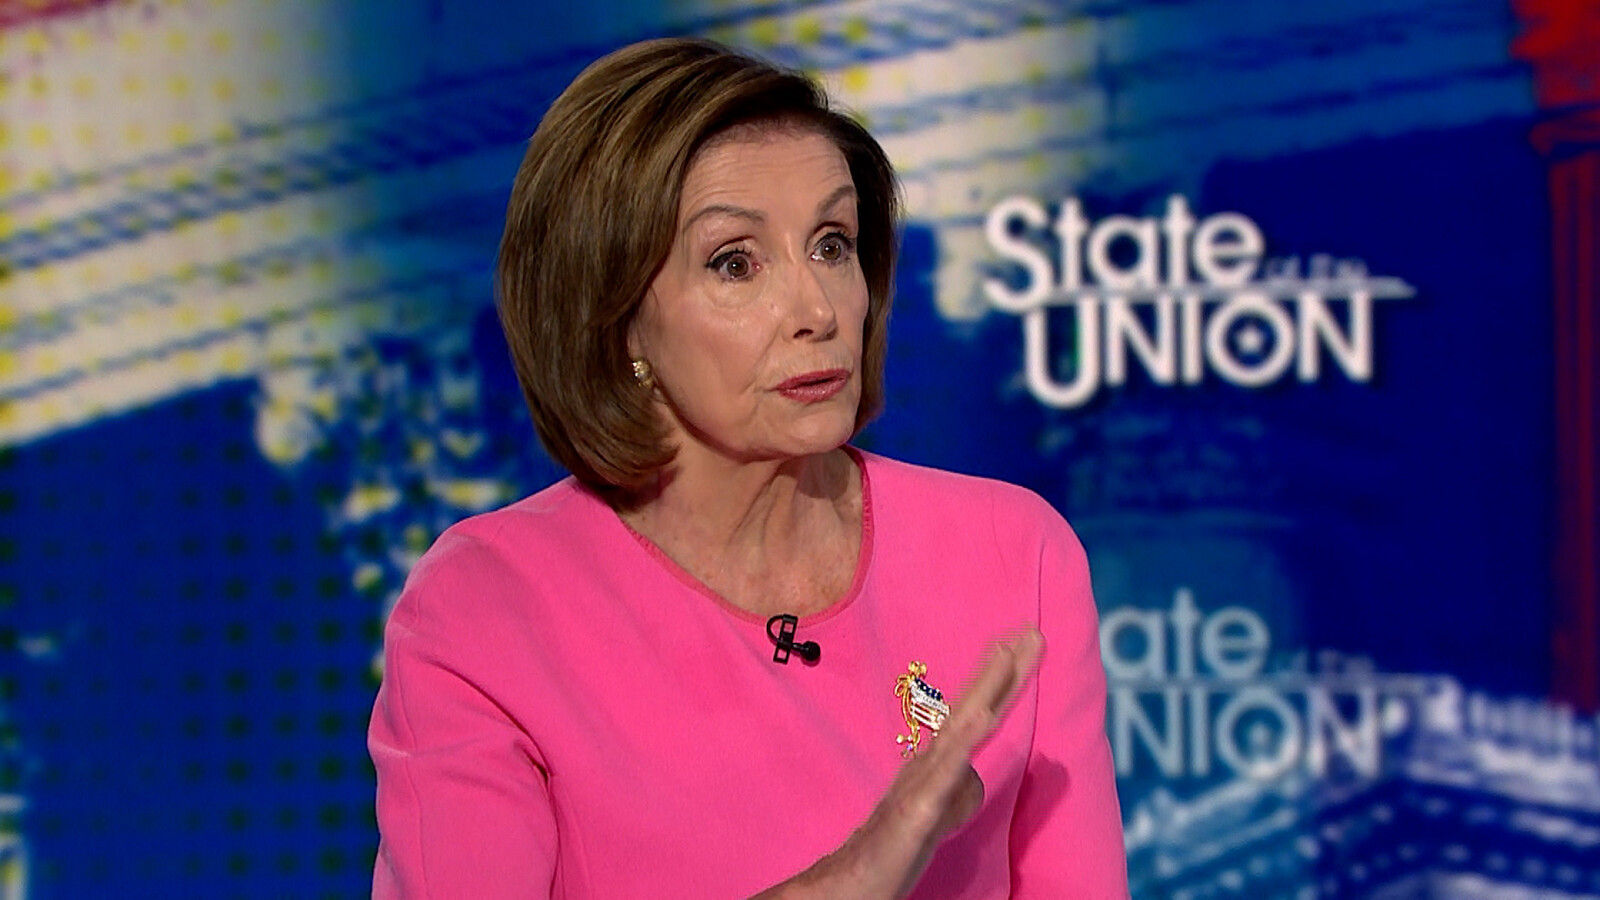 Pelosi says Democrats plan to have 'agreement' on spending bill and vote on bipartisan infrastructure bill in the next week